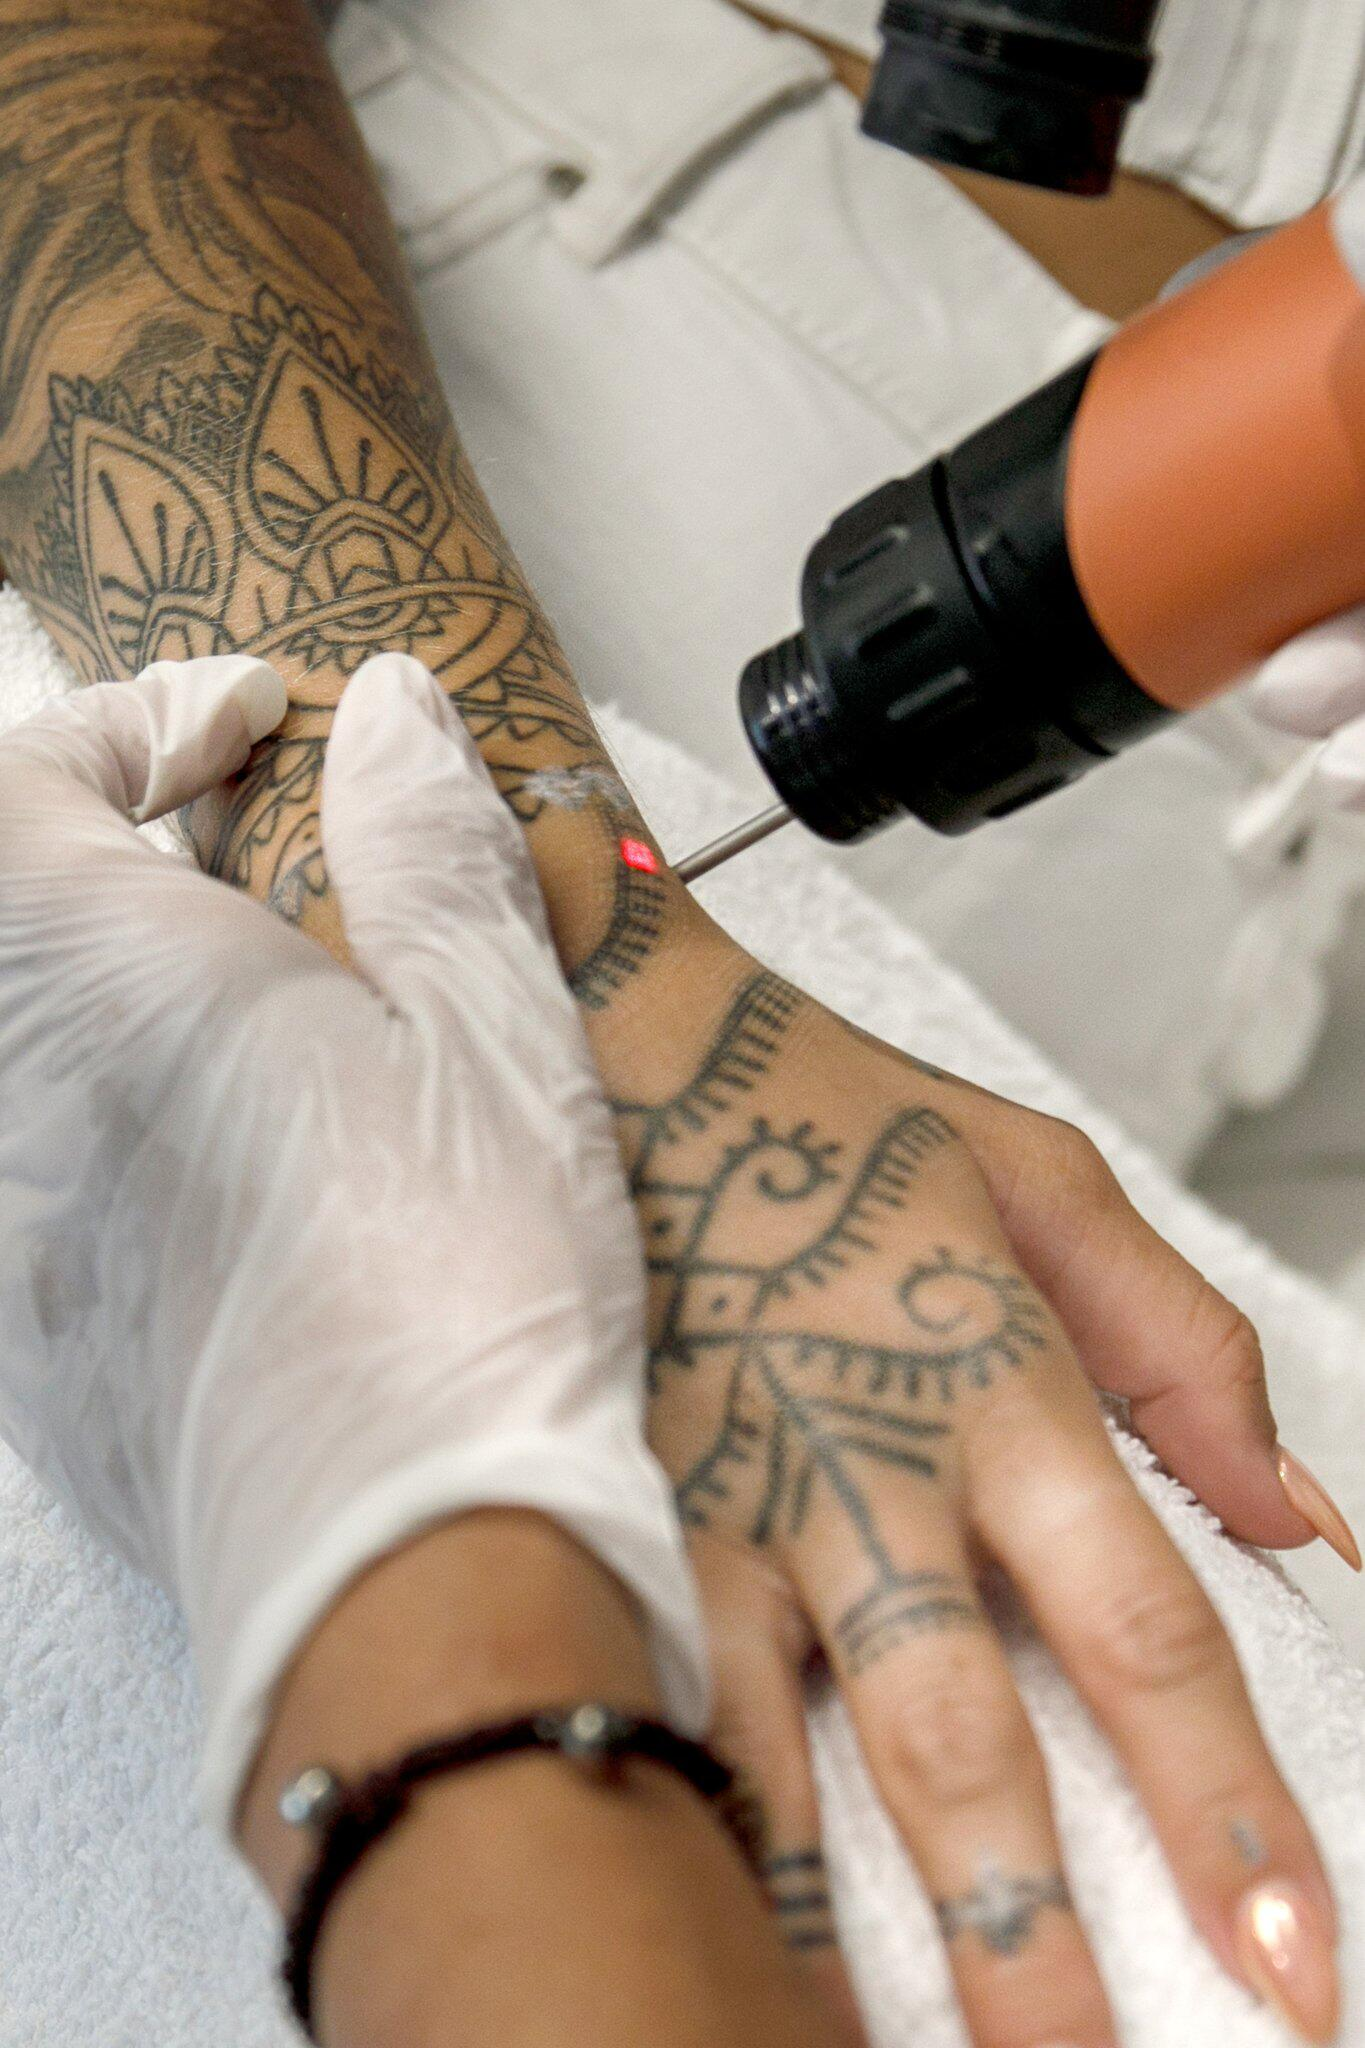 Bild zu Tattoo removal soon only by the doctor